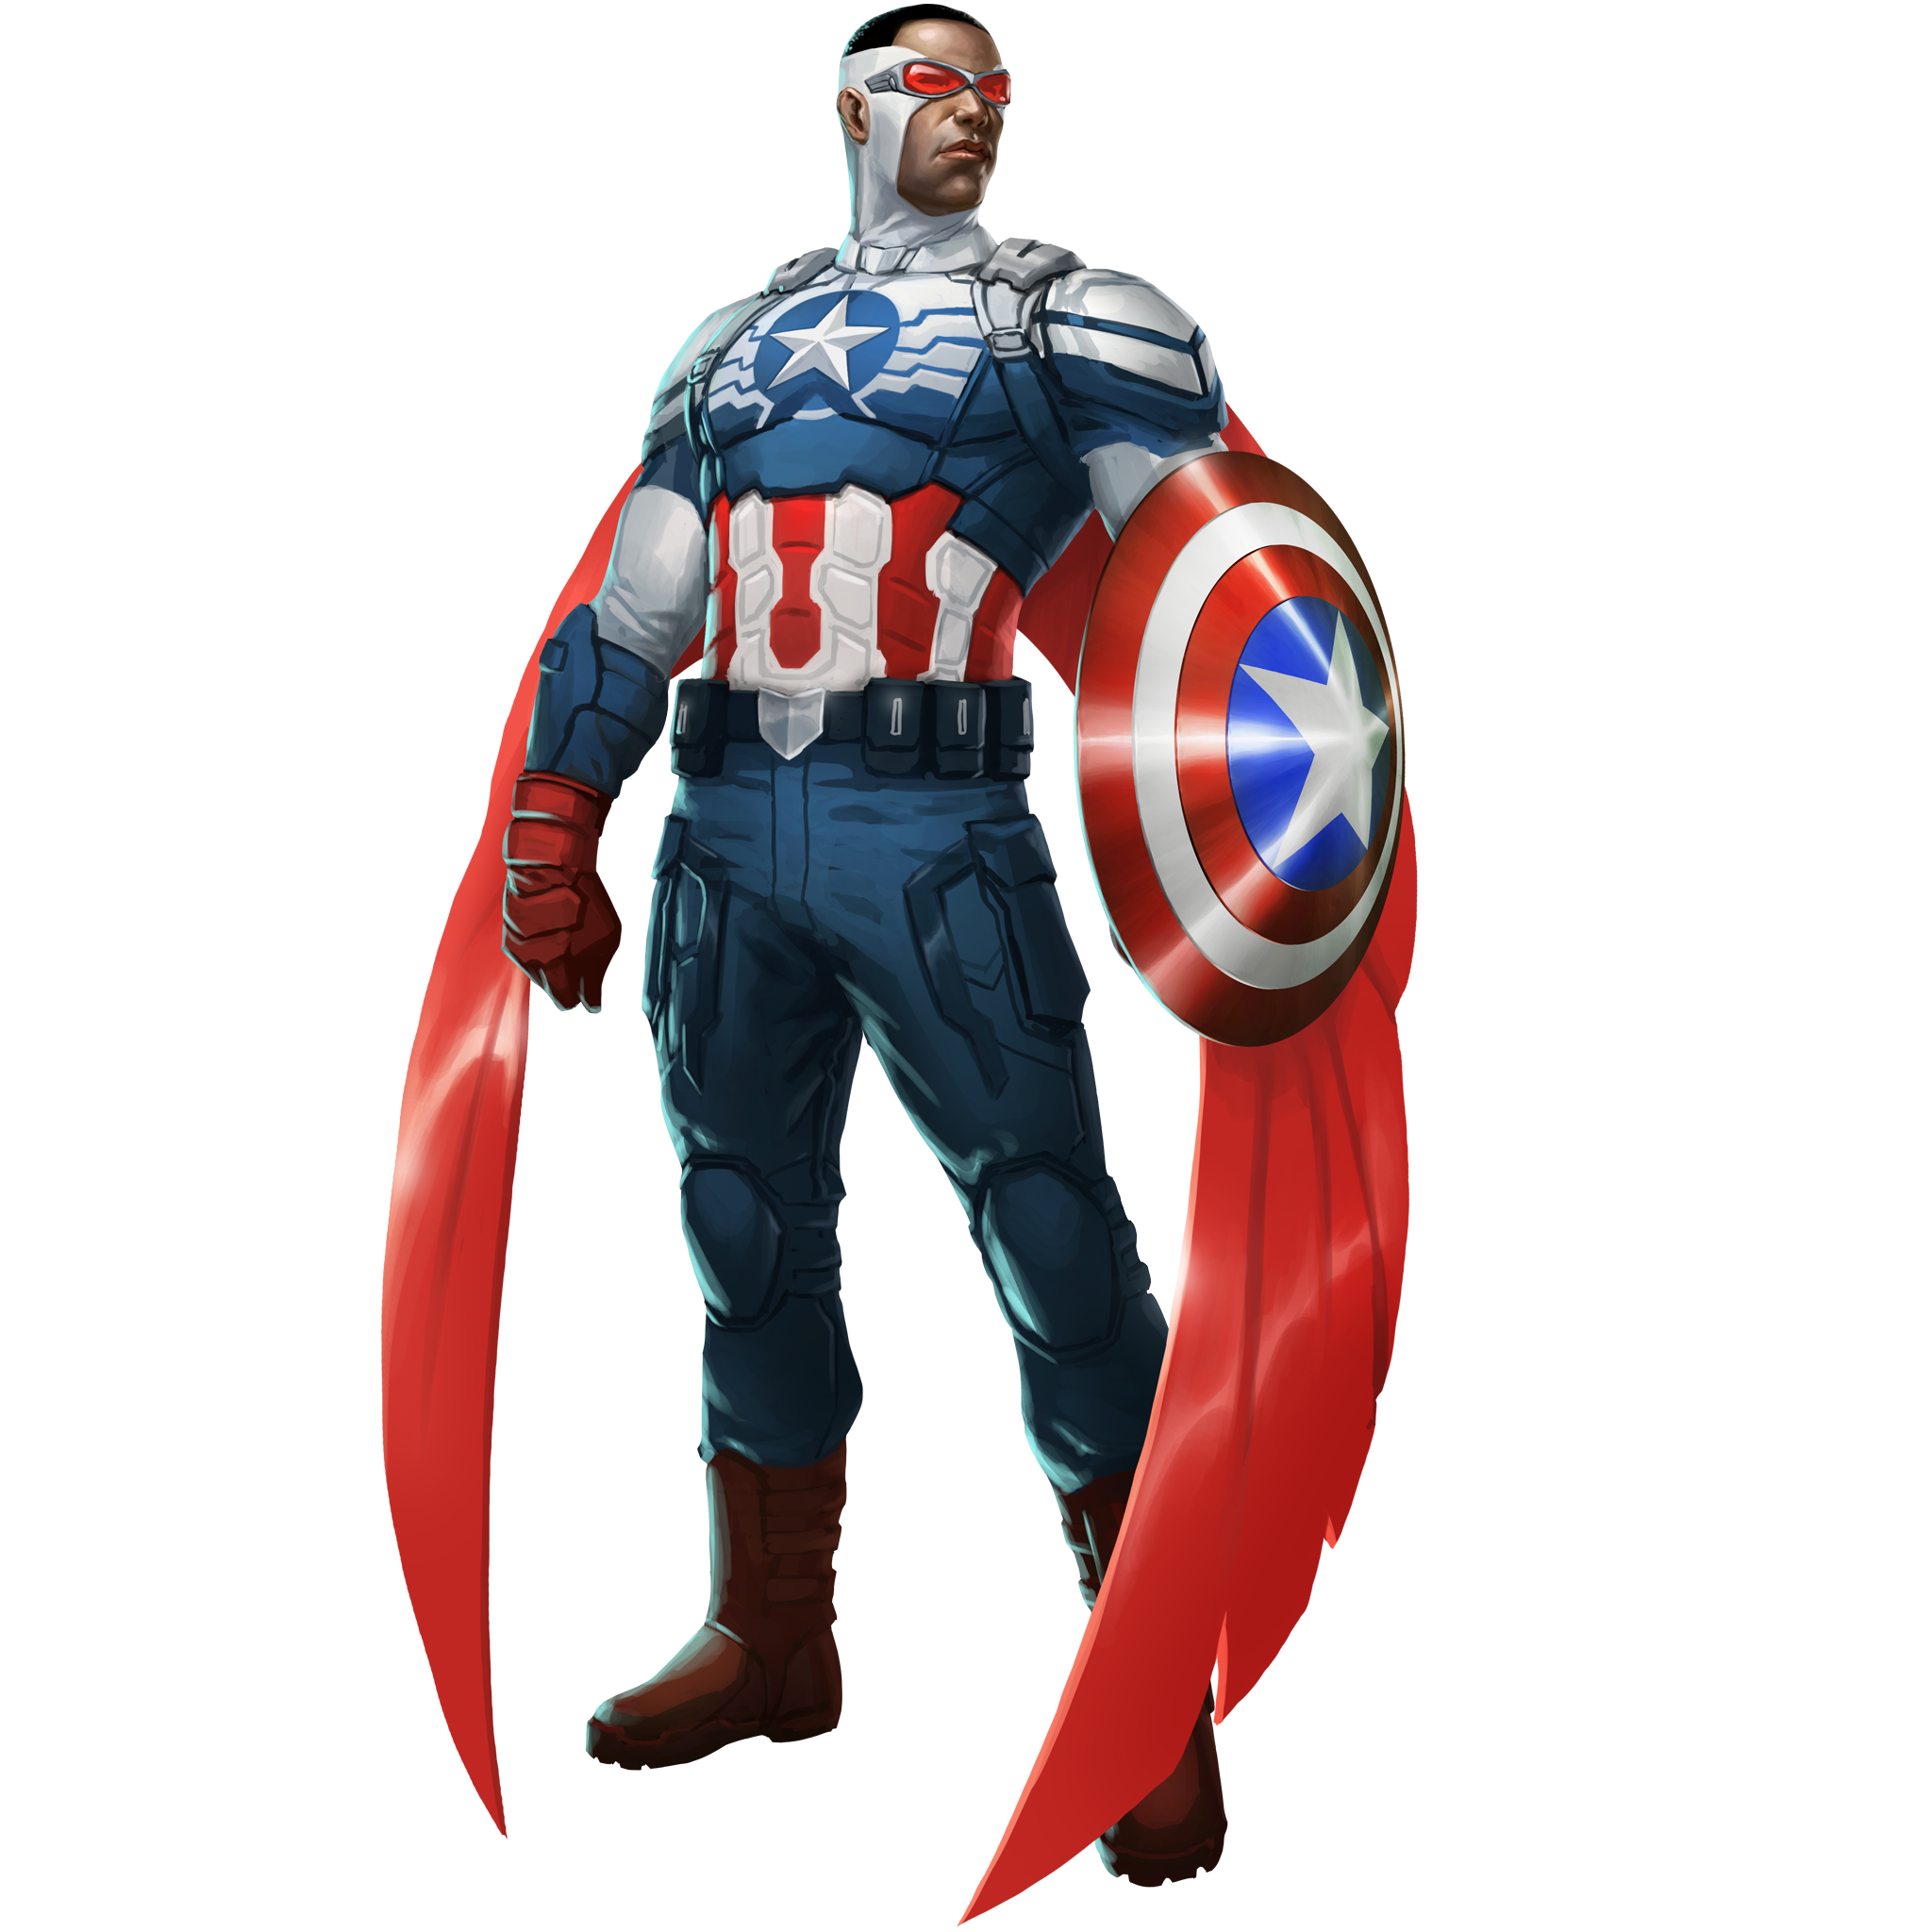 Drawing marvel captain america. Sam wilson mpq super